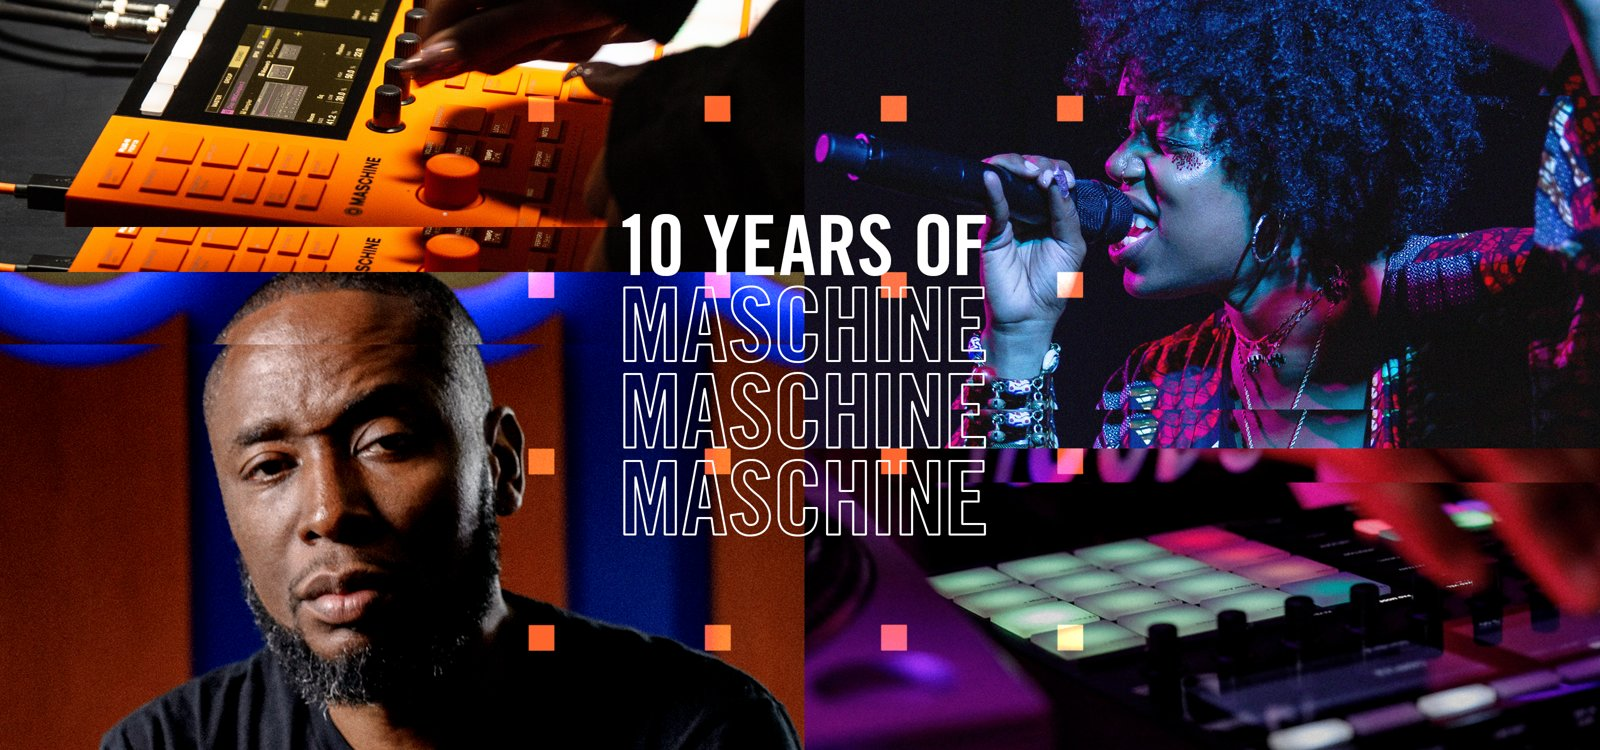 img-ce-maschine-10-years-landing-page-01-welcome-screen-new_06-a6ee994affe5fc471fc4e4b4b0e8f856-d1